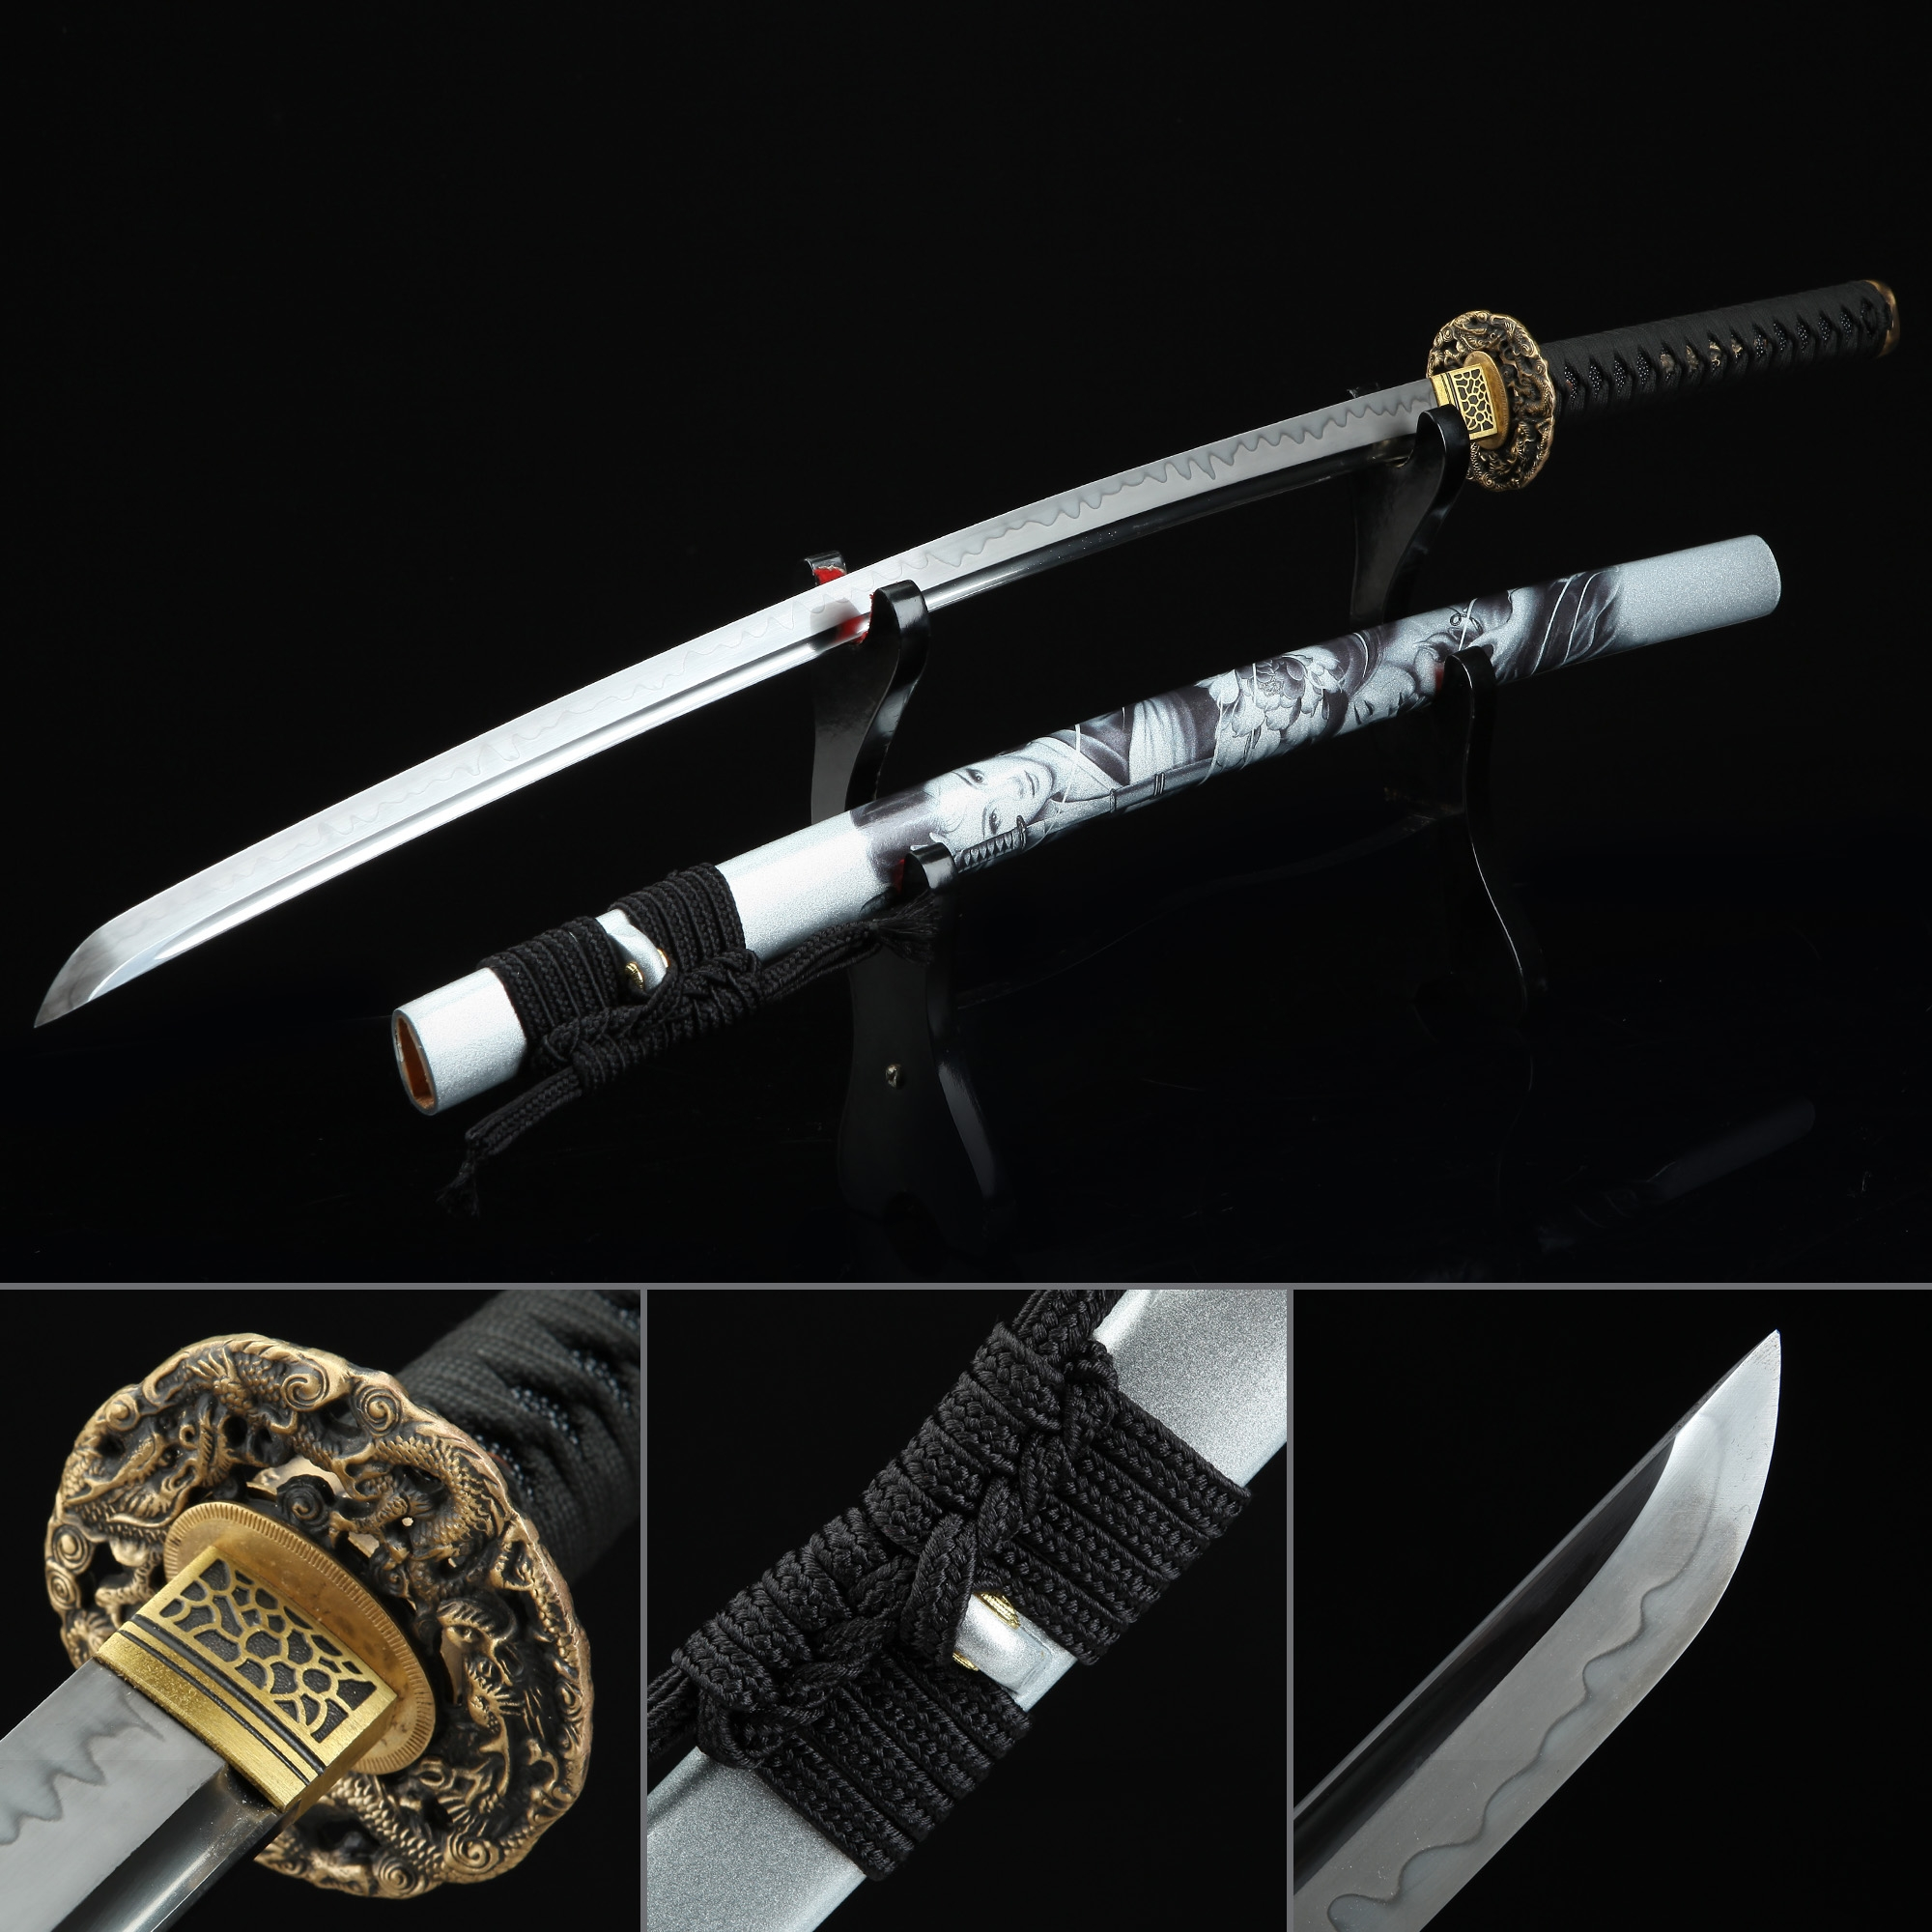 Battle Ready Sword, Japanese Katana Sword T10 Folded Clay Tempered Steel With White Scabbard